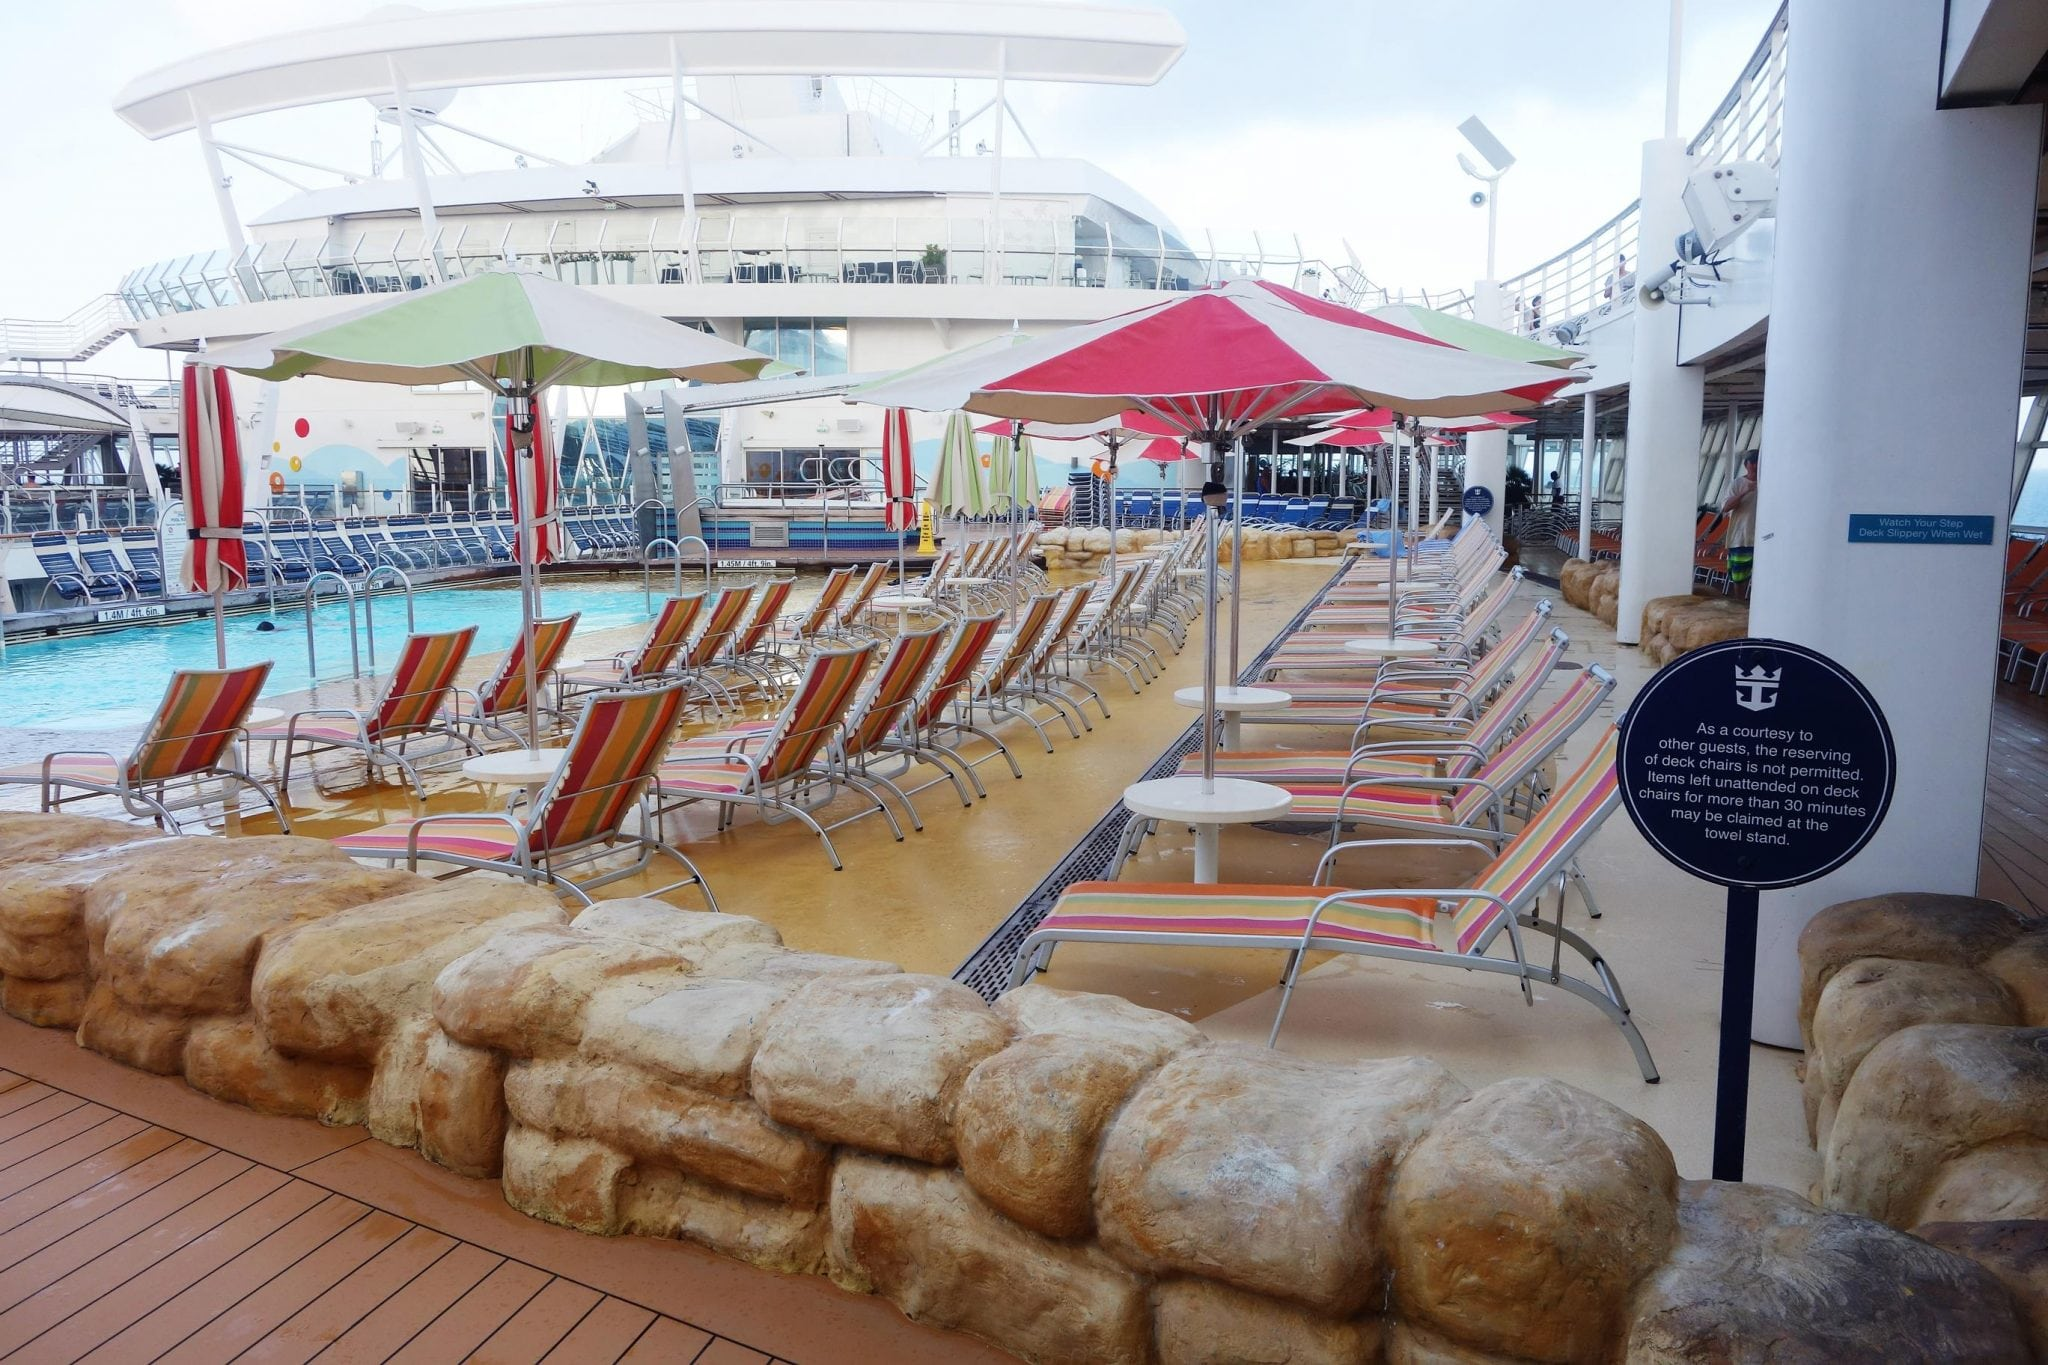 The Perfect Sea Day on Oasis of the Seas